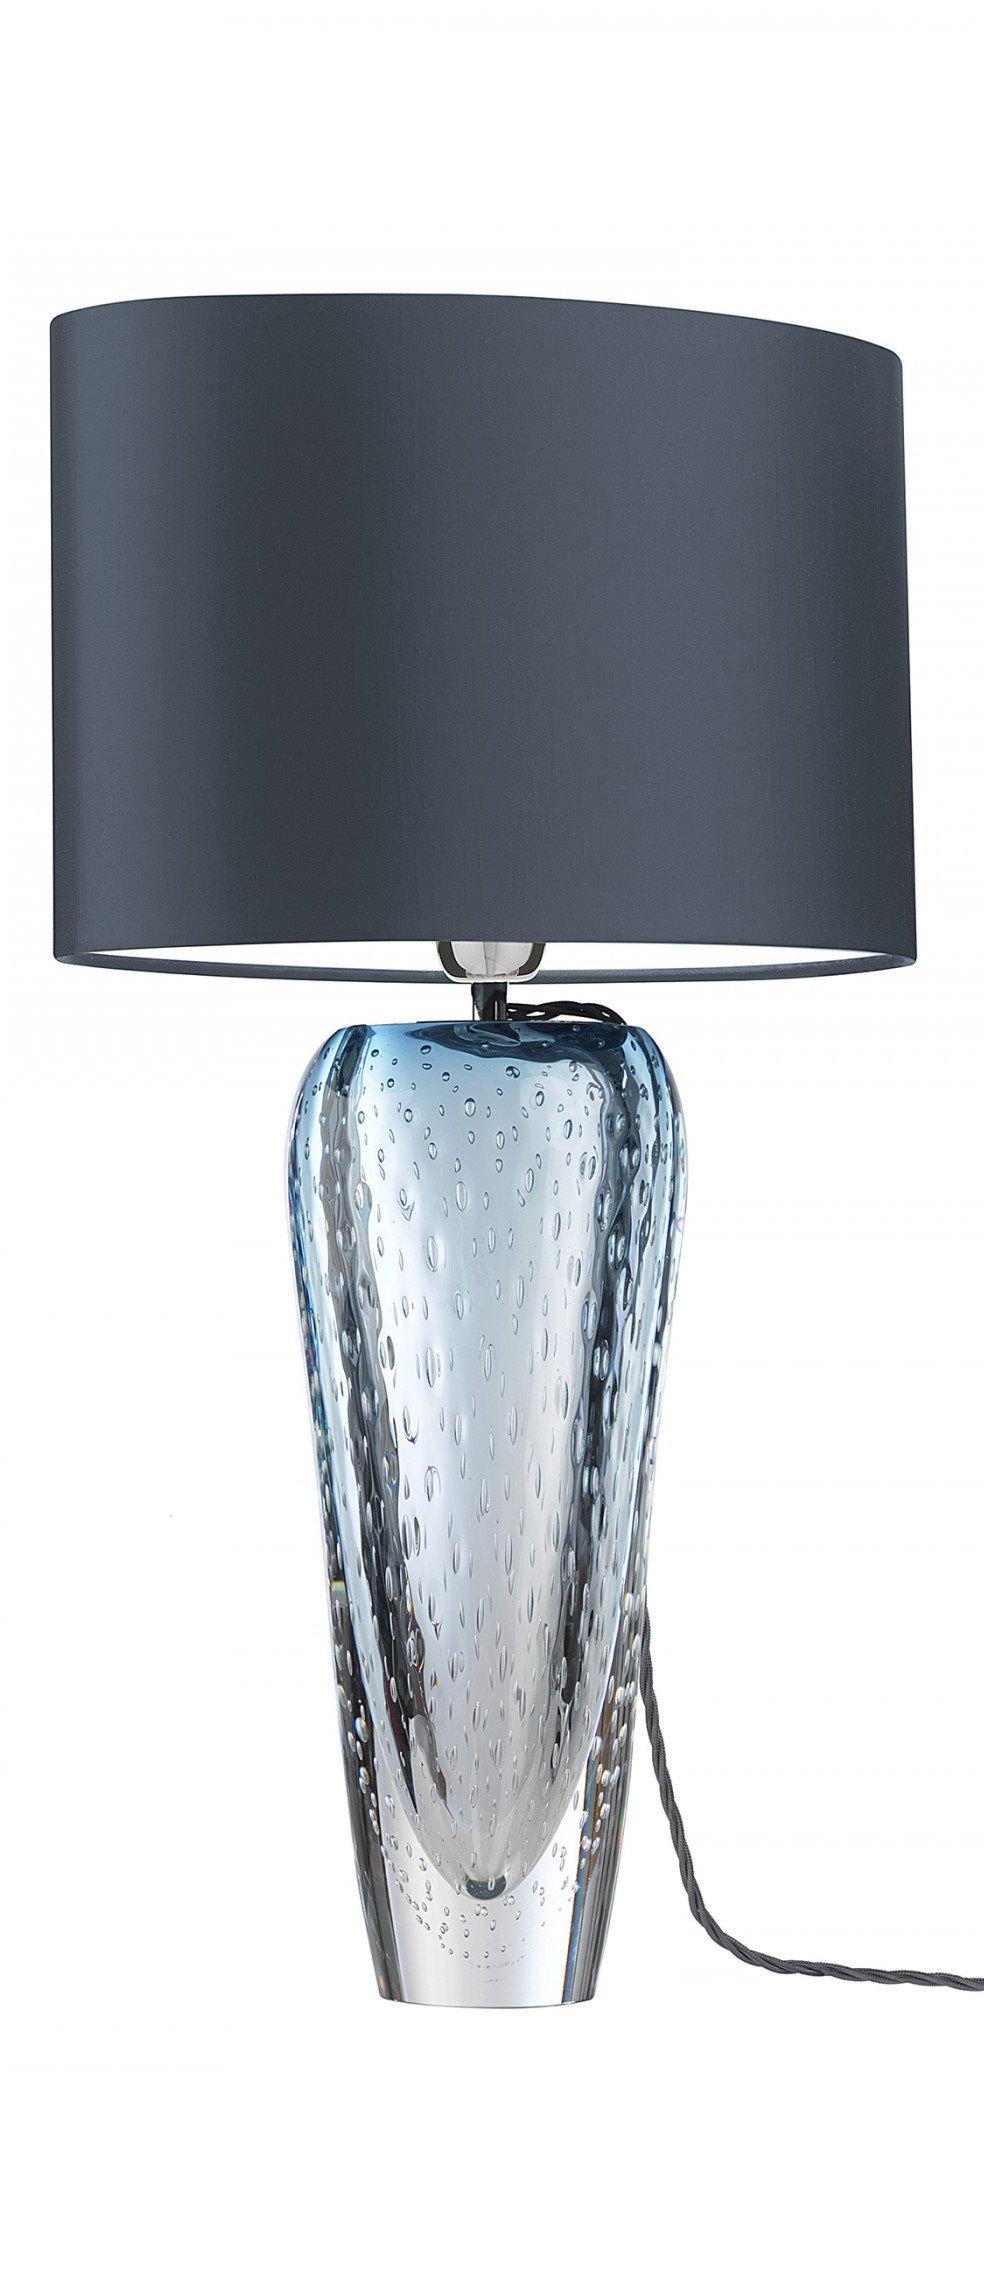 Led Bedroom Table Lamps